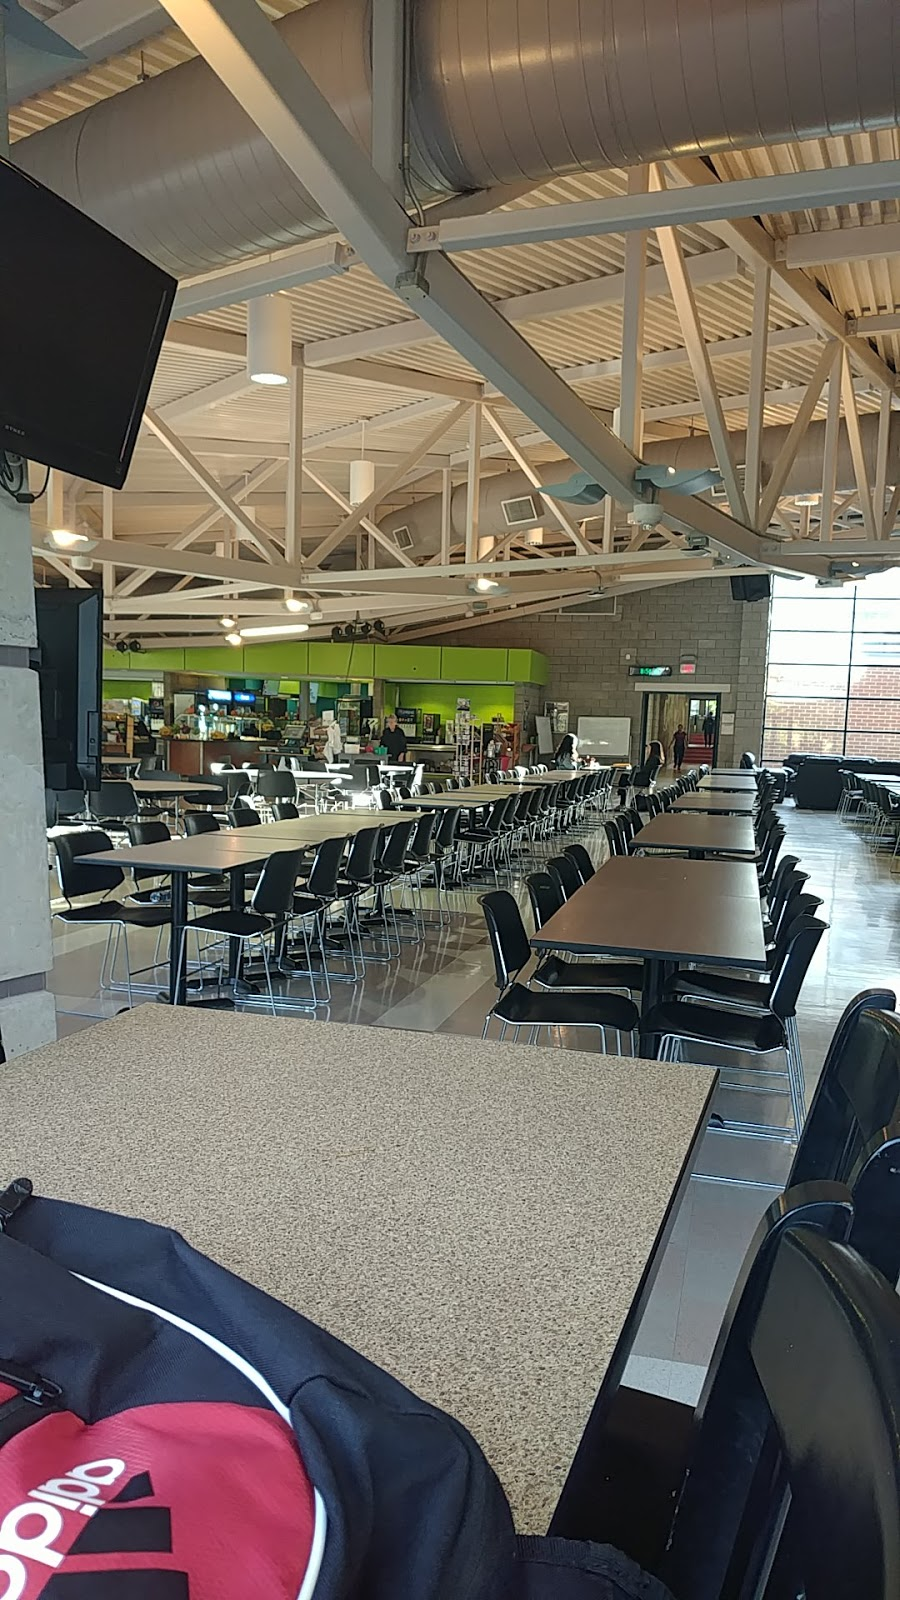 DeCew Residence Dining Hall | restaurant | Residence Rd, St. Catharines, ON L2S 3A1, Canada | 90568855503372 OR +1 905-688-5550 ext. 3372